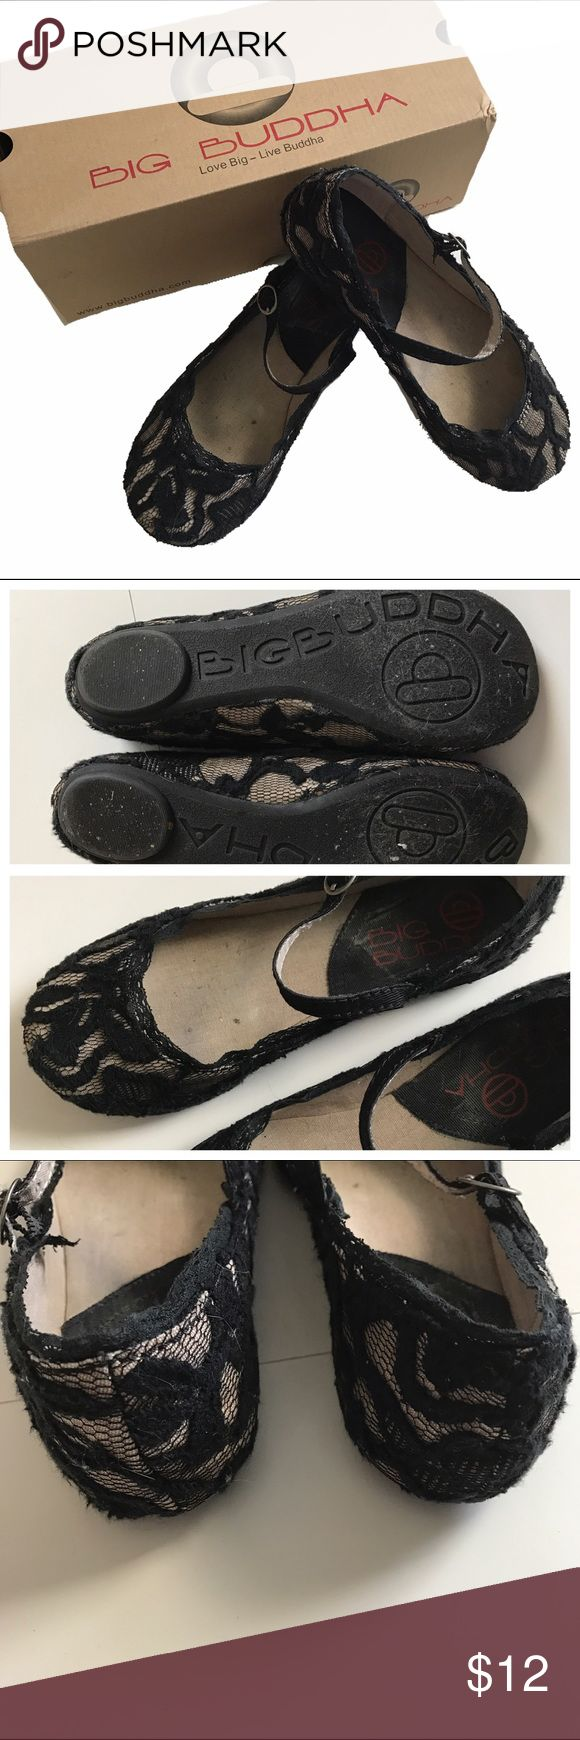 Big Buddha lace flats Black and cream lace flats.  Ankle strap with buckle.  Wear noticeable on inside and ever so slightly on sole.  Size 6.5. Big Buddha Shoes Flats & Loafers